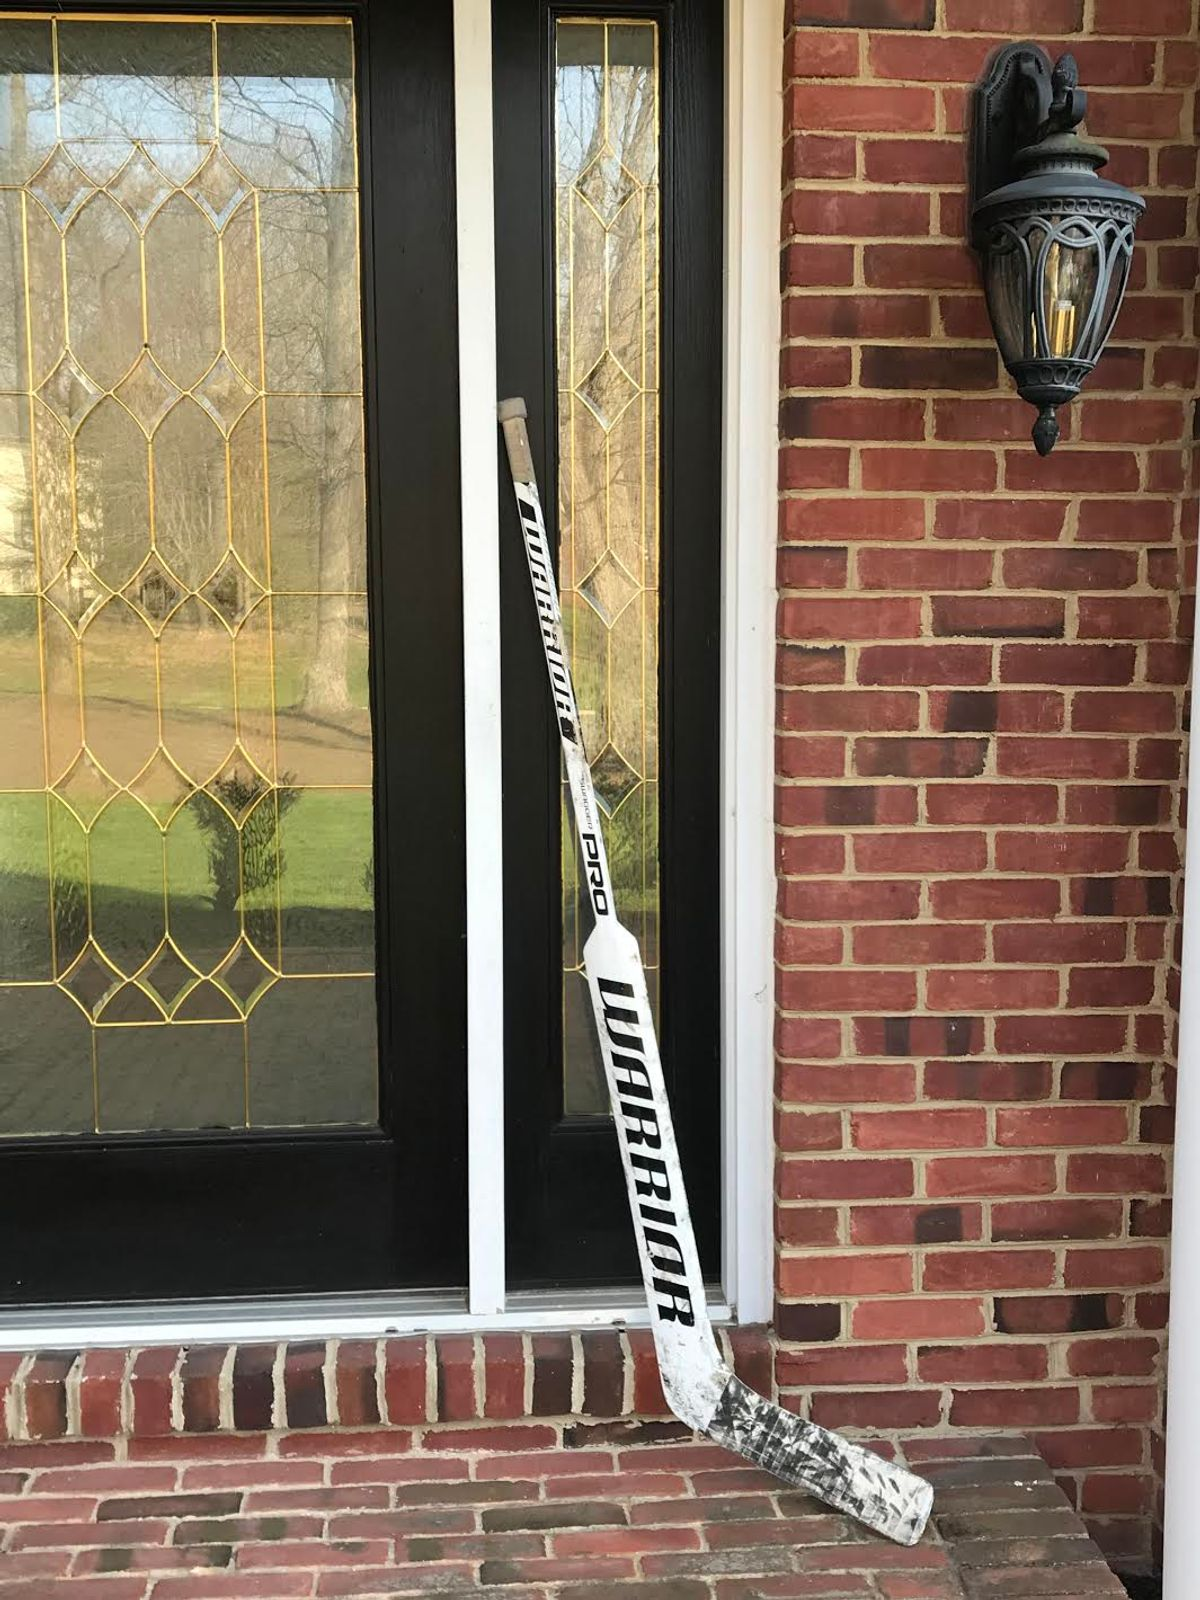 The Tragedy That Started The #PutYourSticksOut Movement